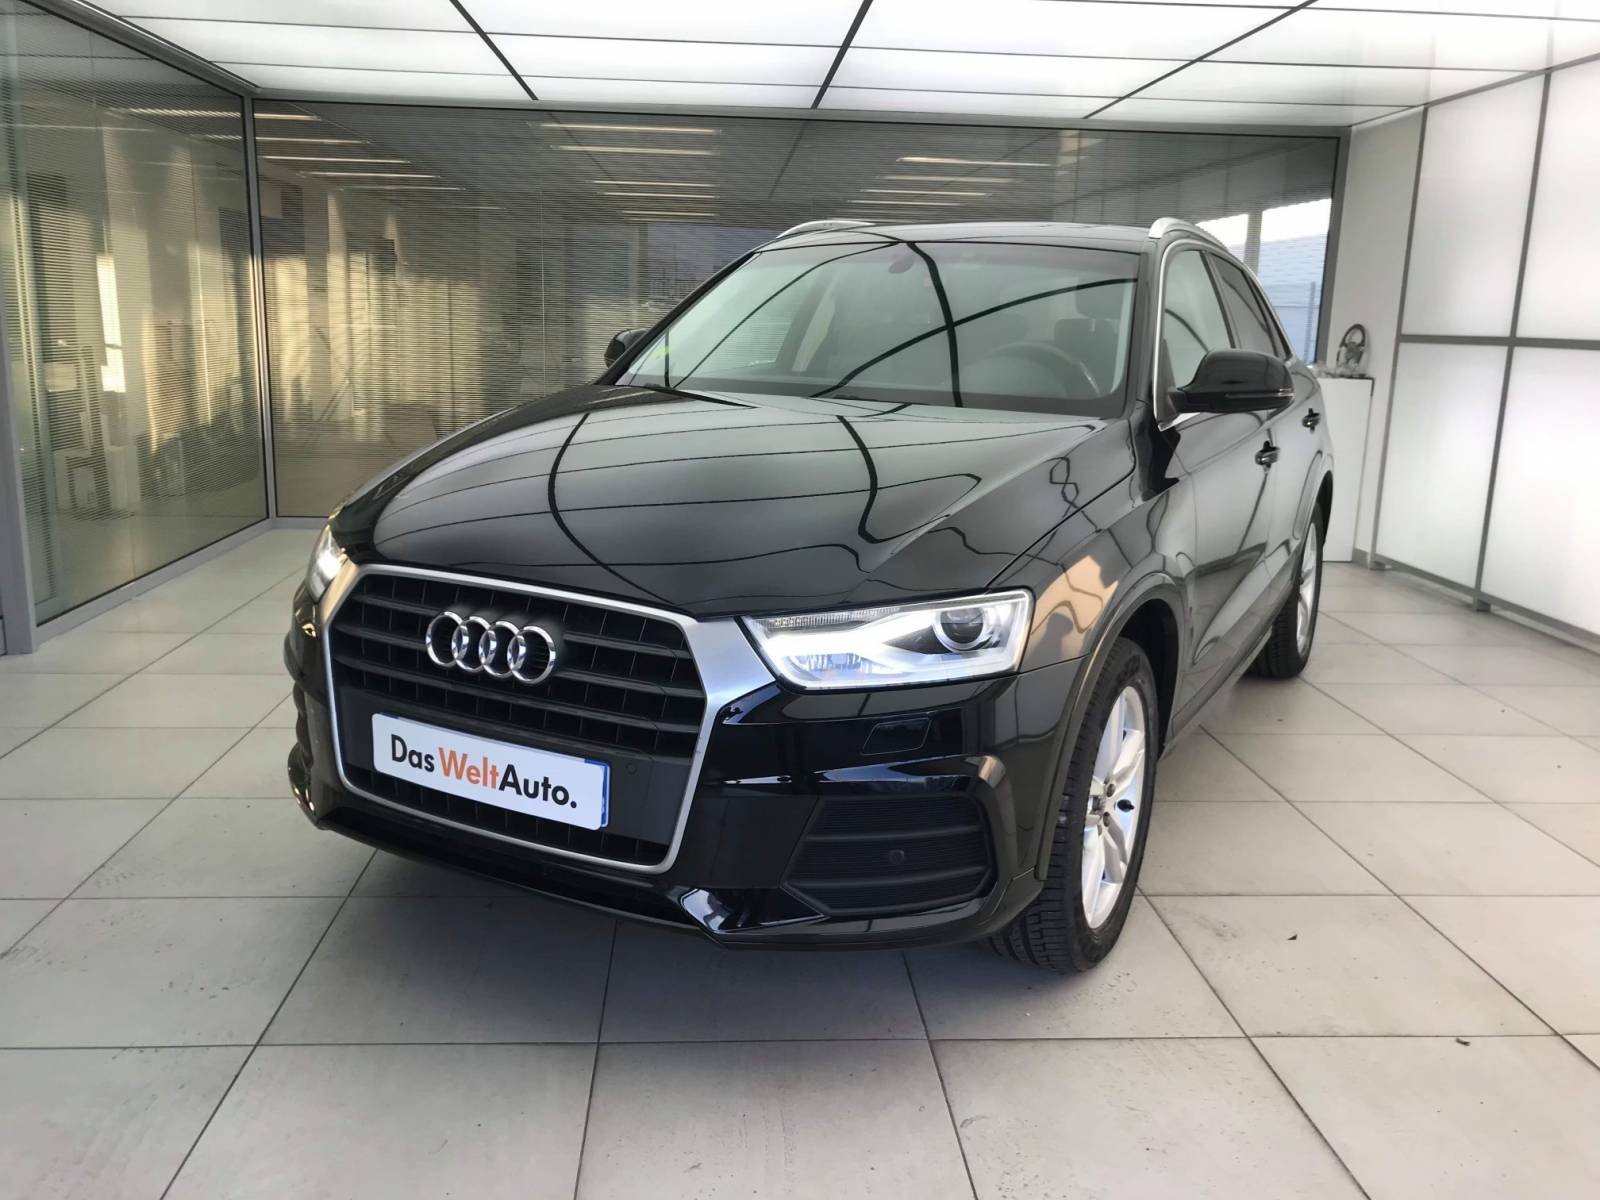 AUDI Q3 2.0 TDI 150 ch S tronic 7 - véhicule d'occasion - Site Internet Faurie - Volkswagen - Faurie Axess Tulle - 19000 - Tulle - 1